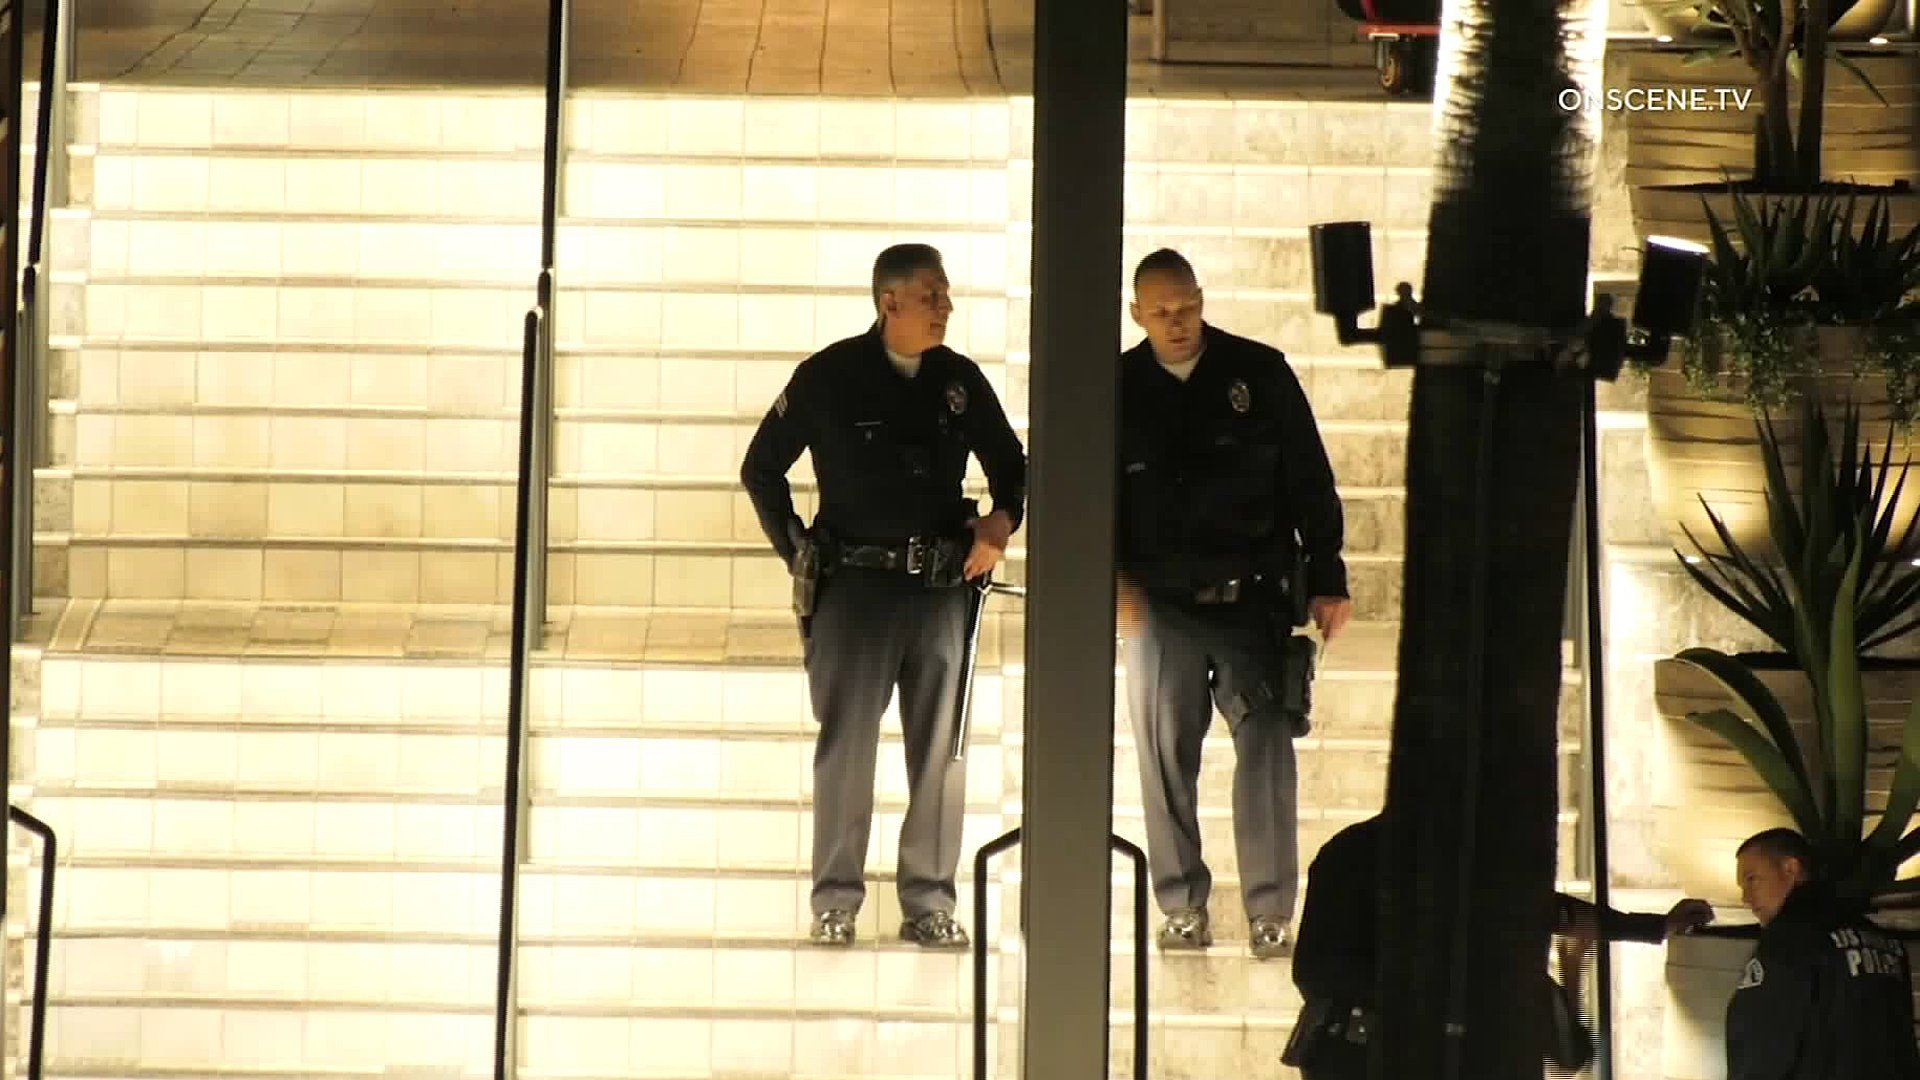 Police investigate a fatal shooting outside the Westfield Century City mall on Jan. 20, 2020. (Credit: OnScene.TV)